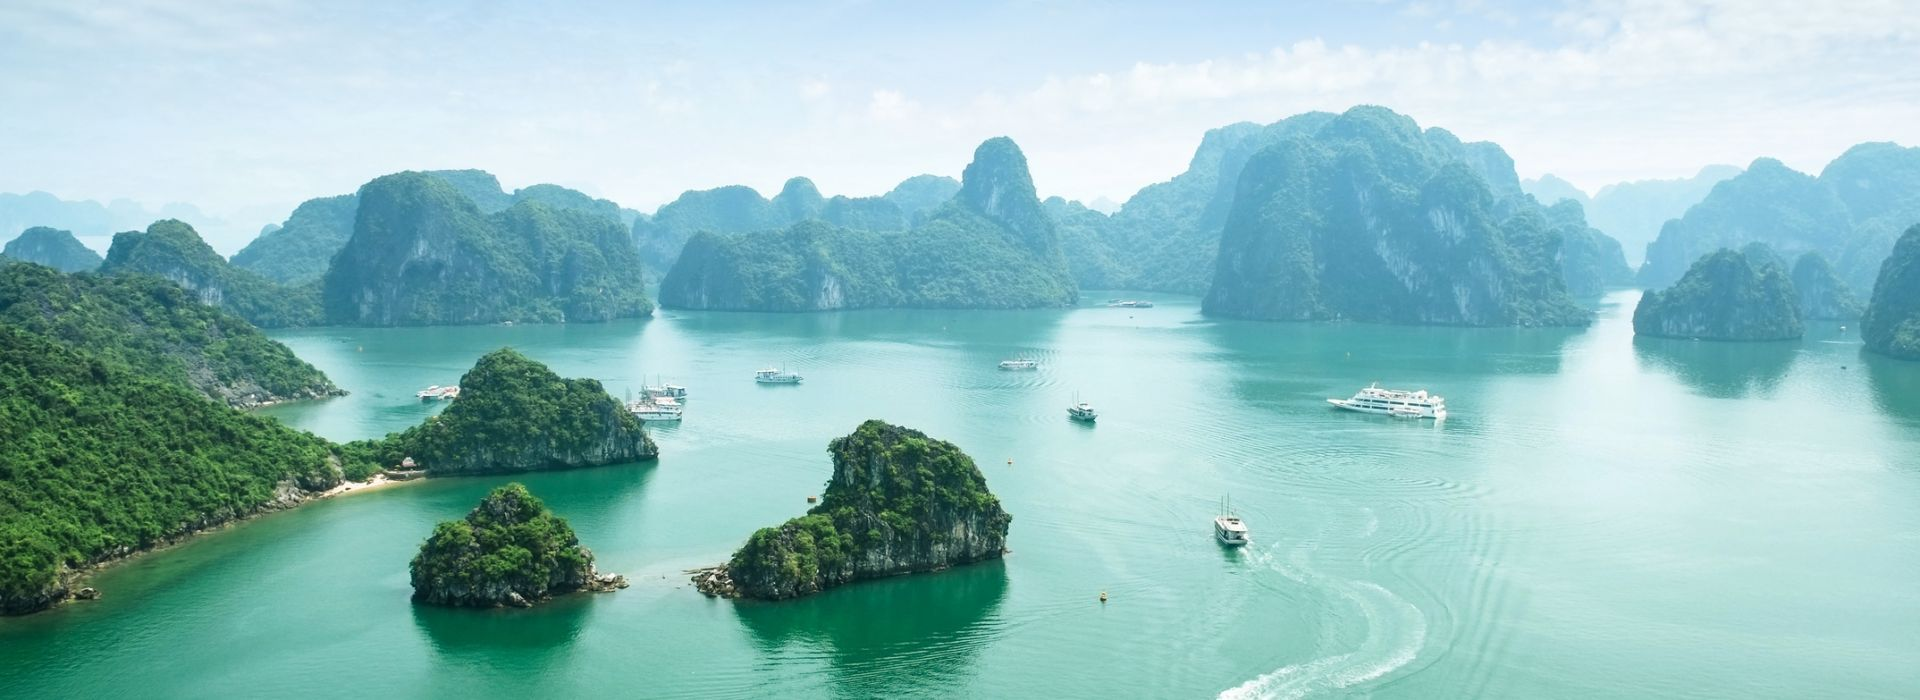 Mountains Tours in Ho Chi Minh City